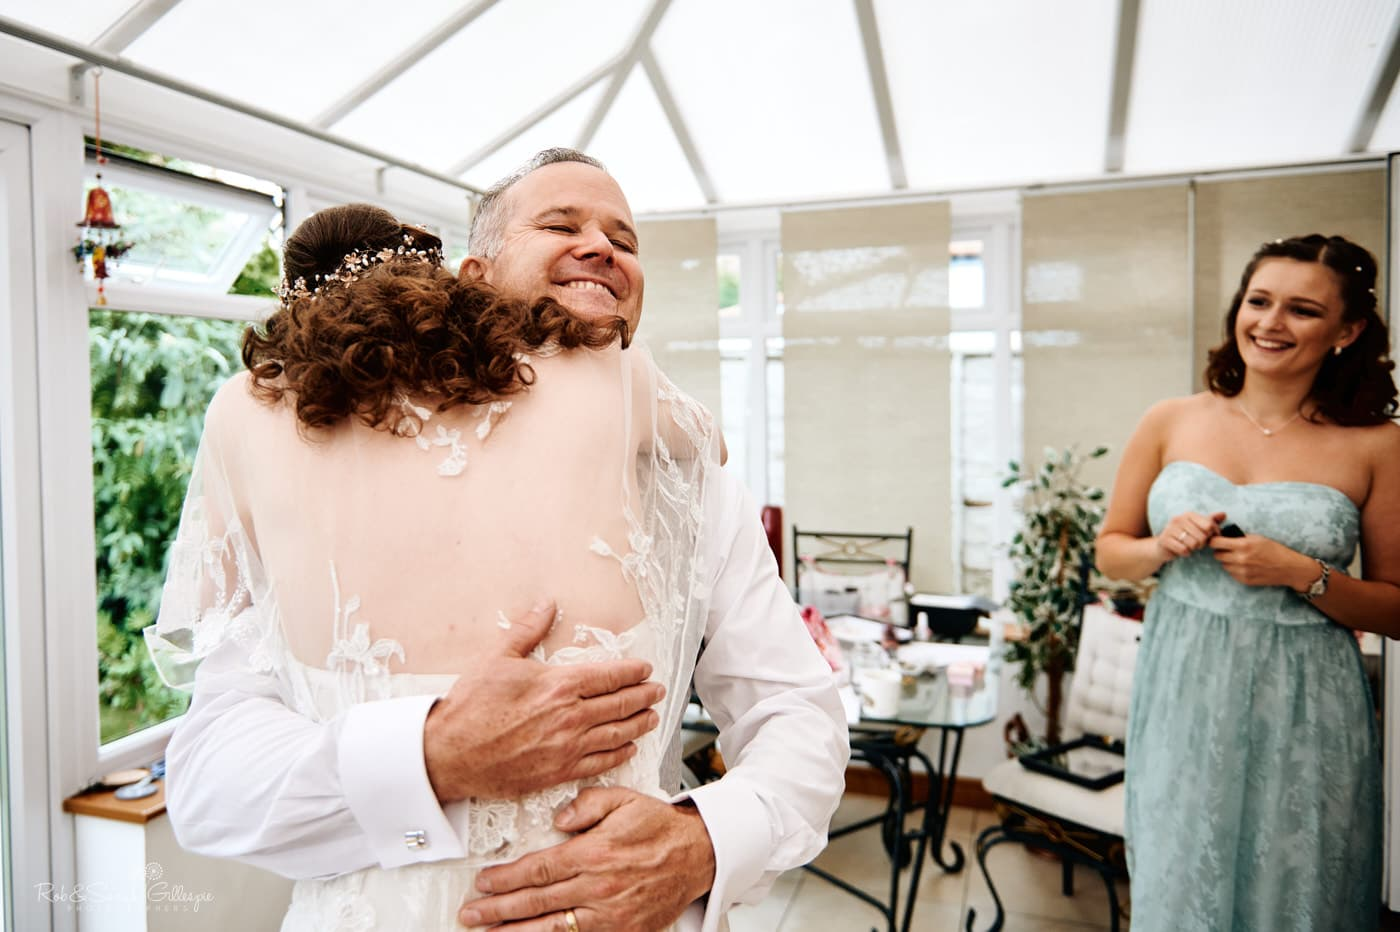 Bride' hugs dad when he sees her in wedding dress for the first time